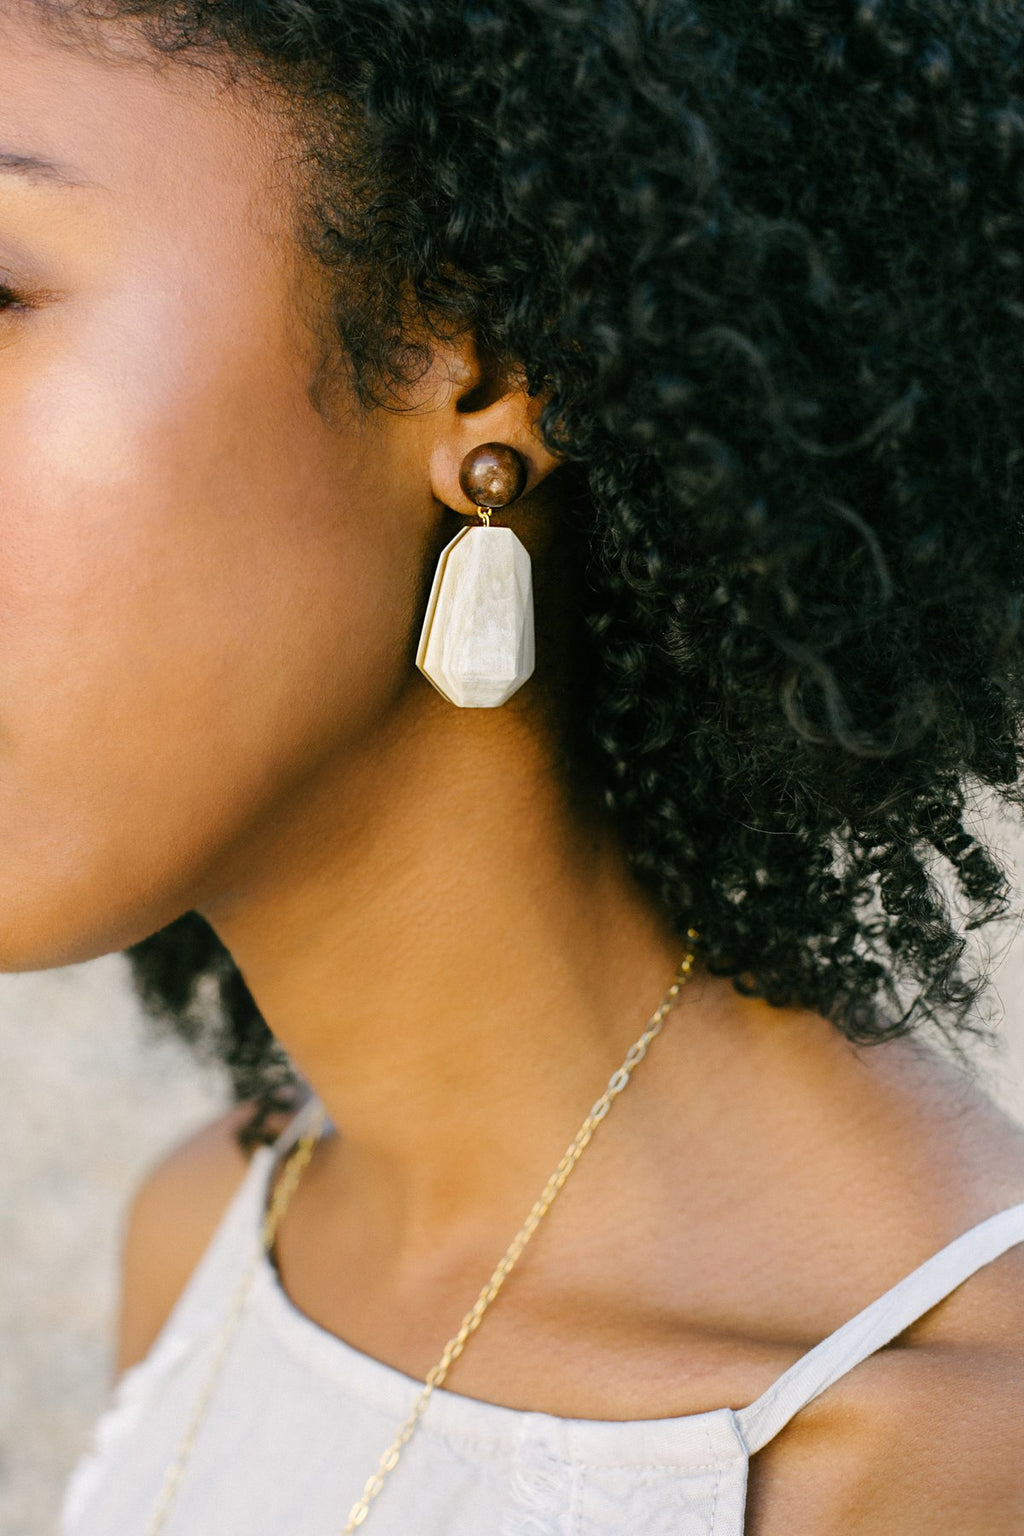 Purpose Jewelry Kindred Eearrings